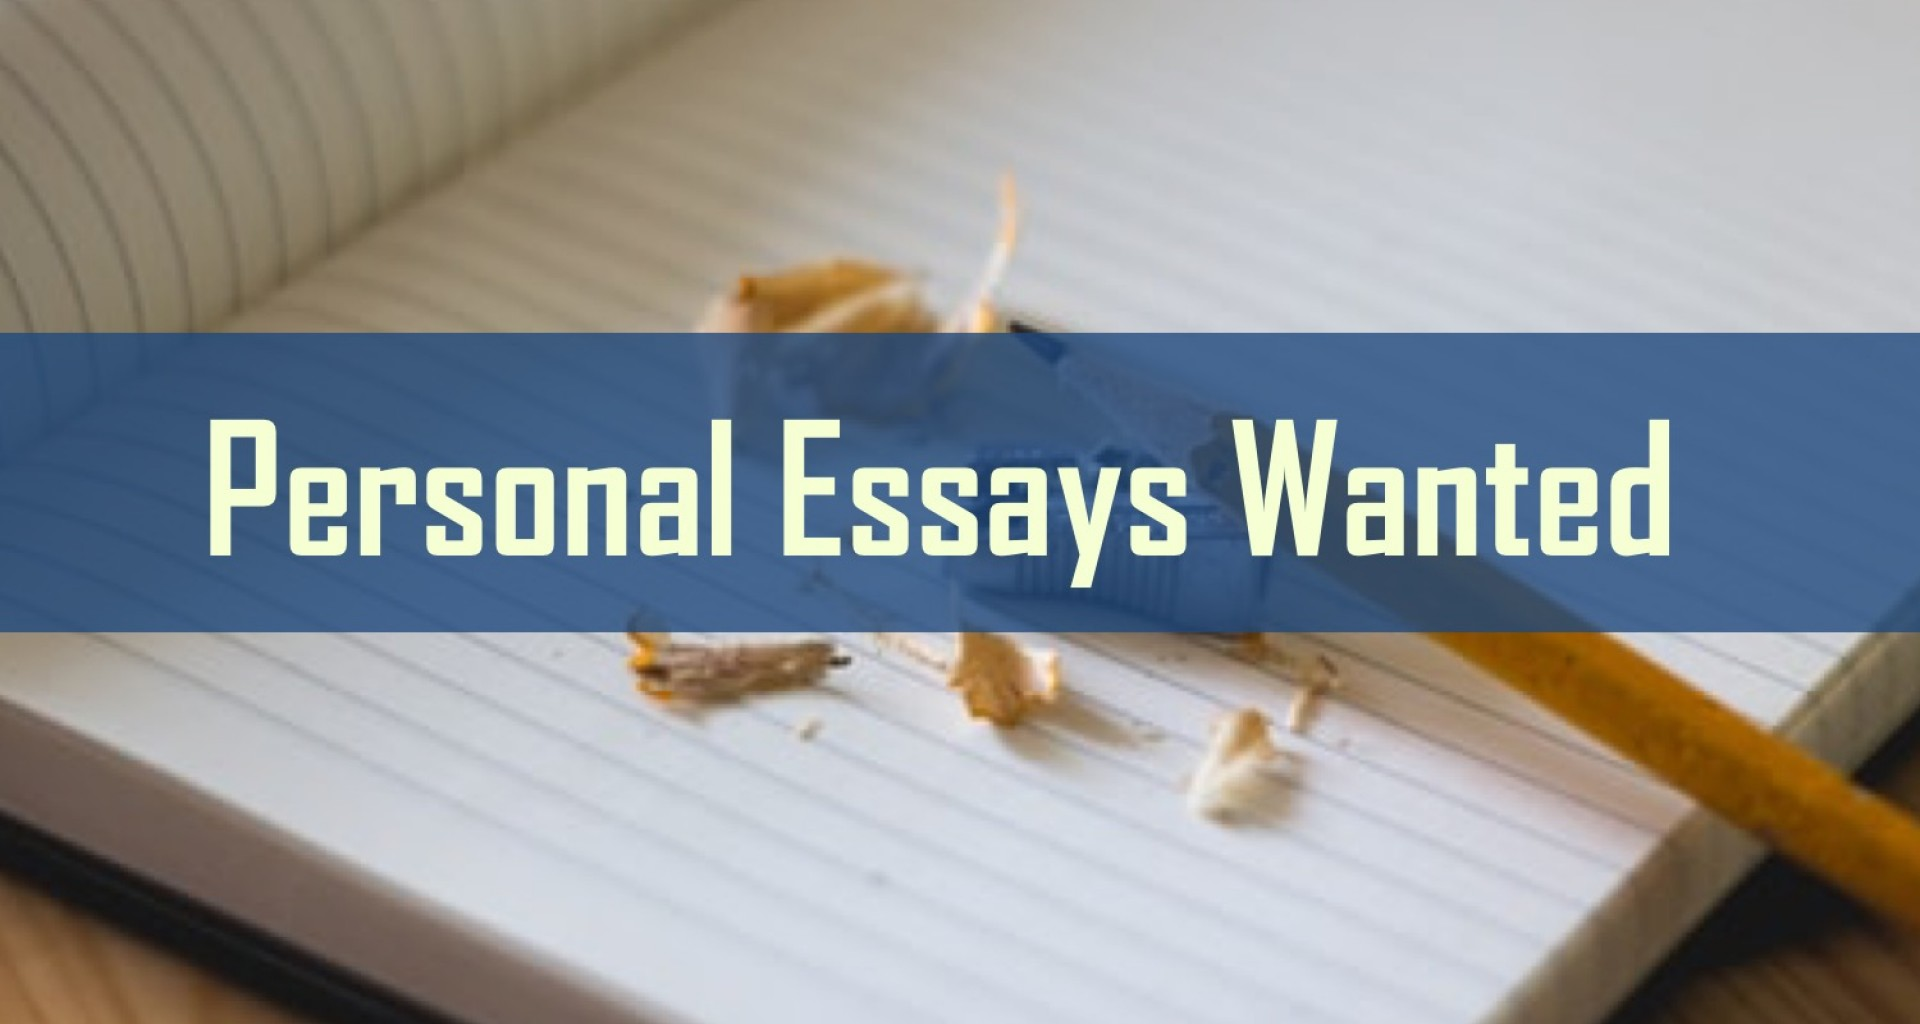 005 Essay Example Personal Essays Wanted Where To Fearsome Submit 1920